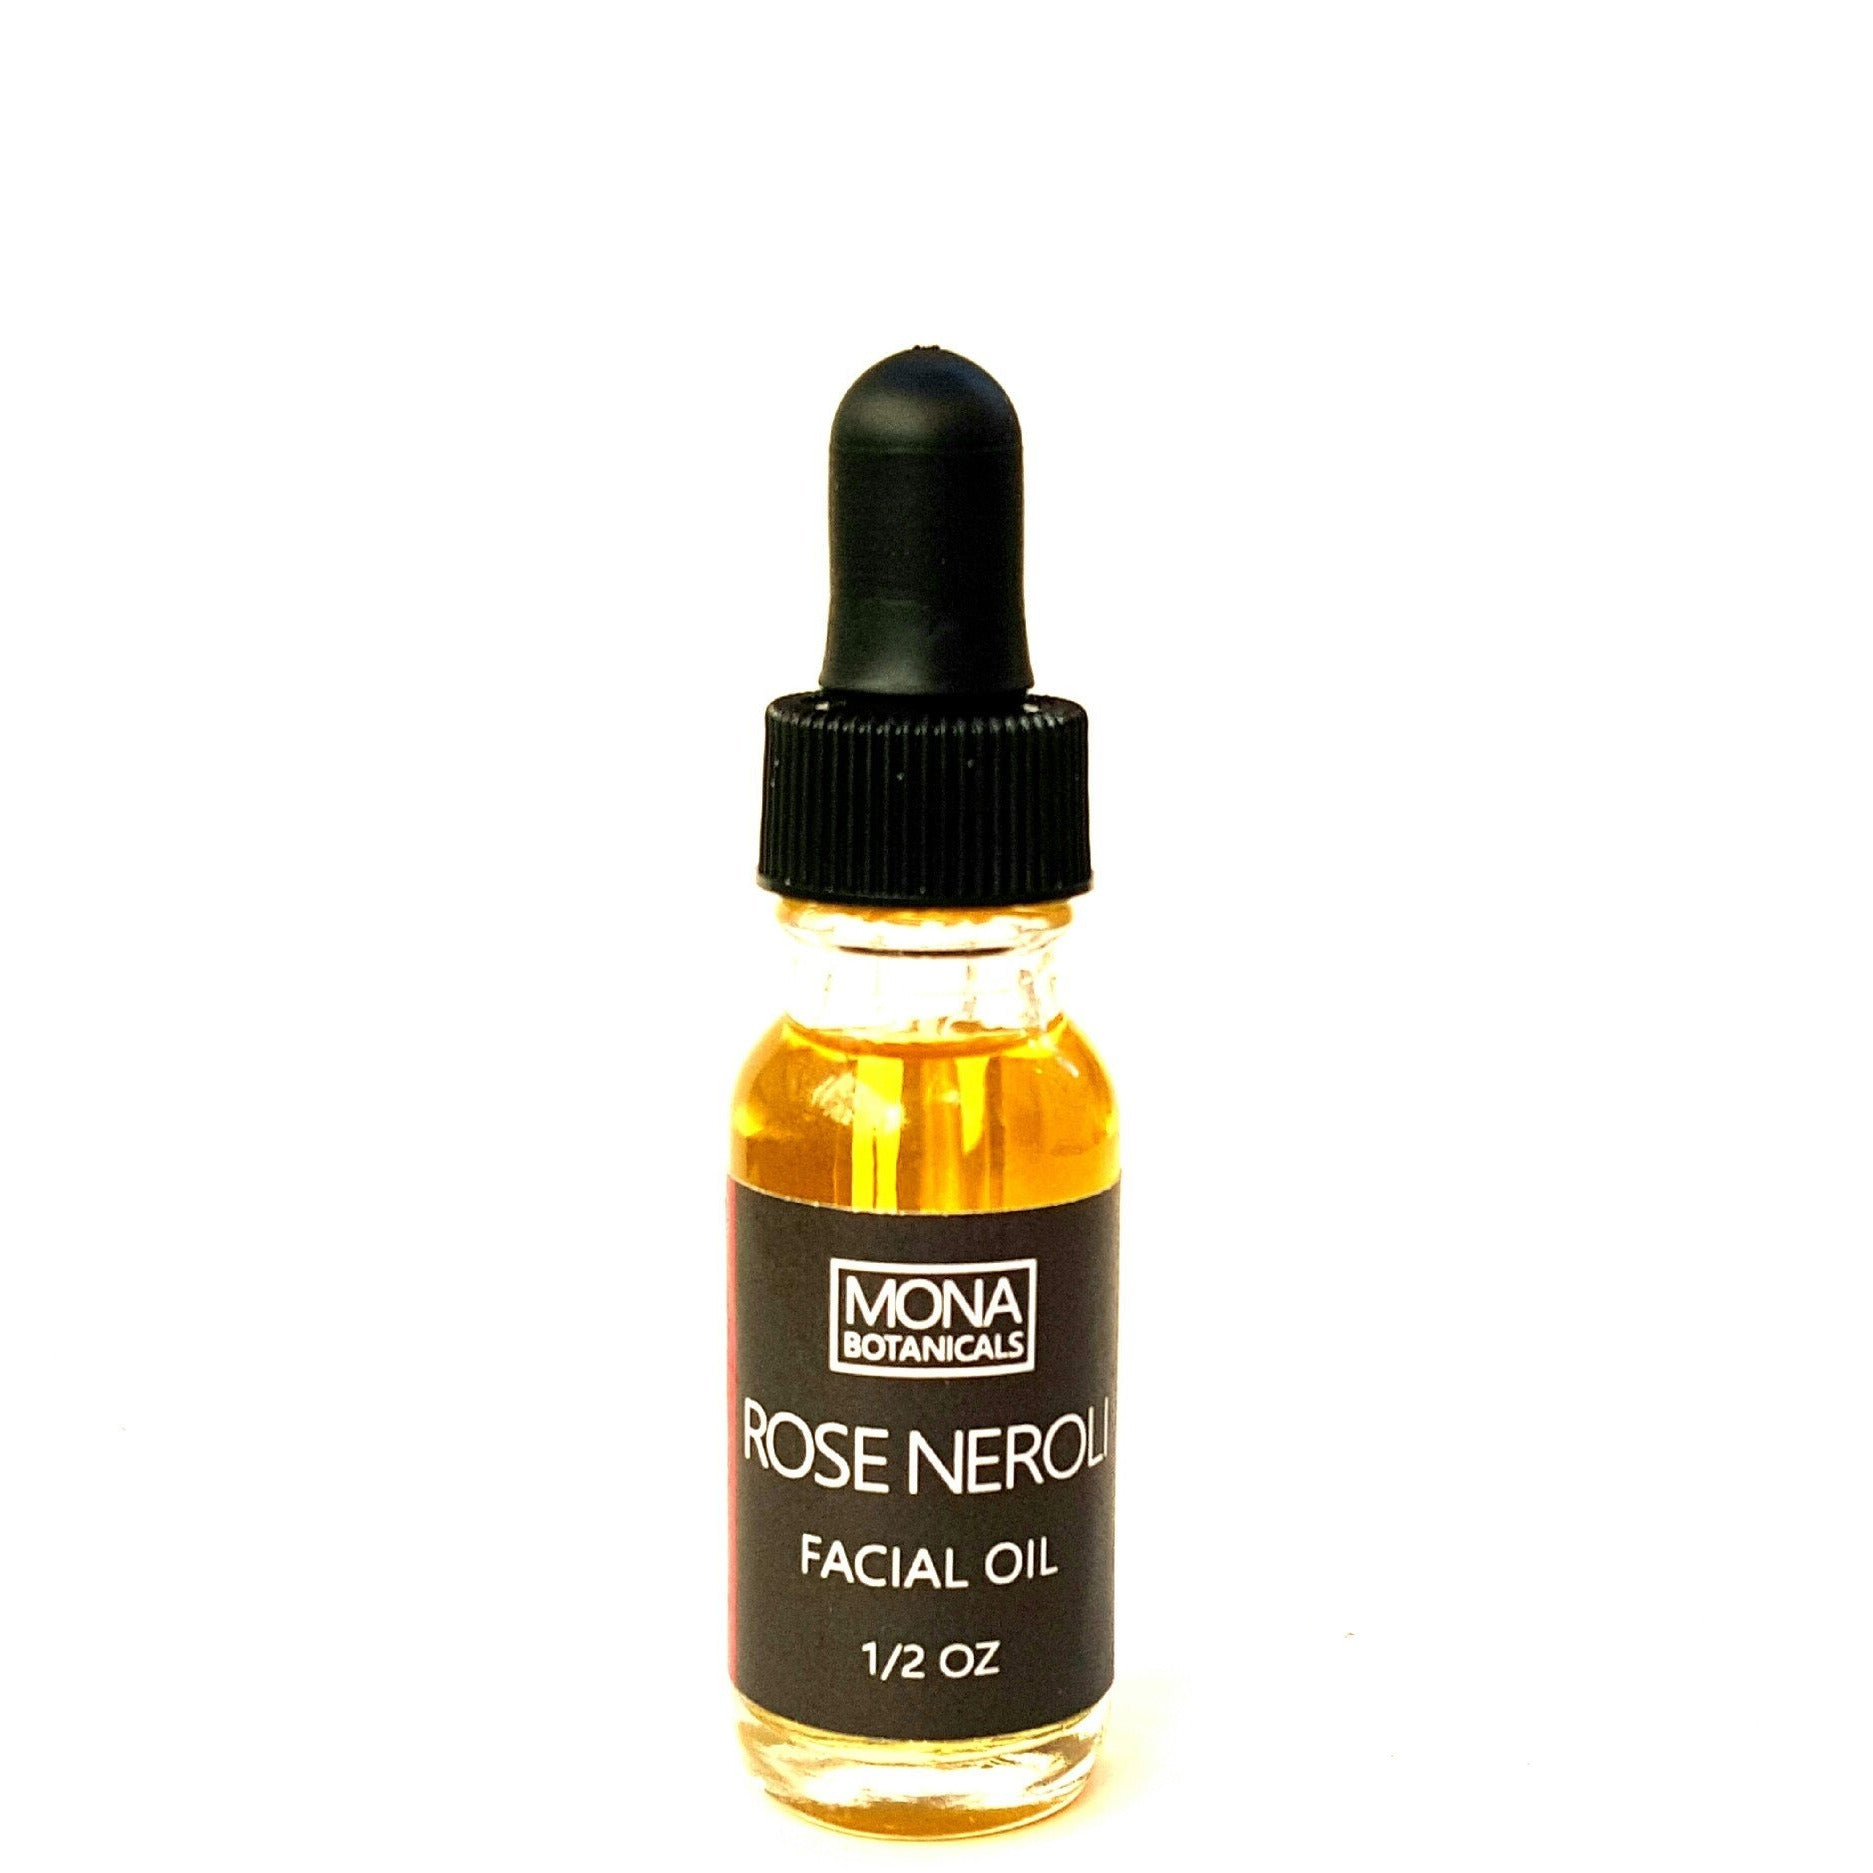 Rose Neroli Facial Oil